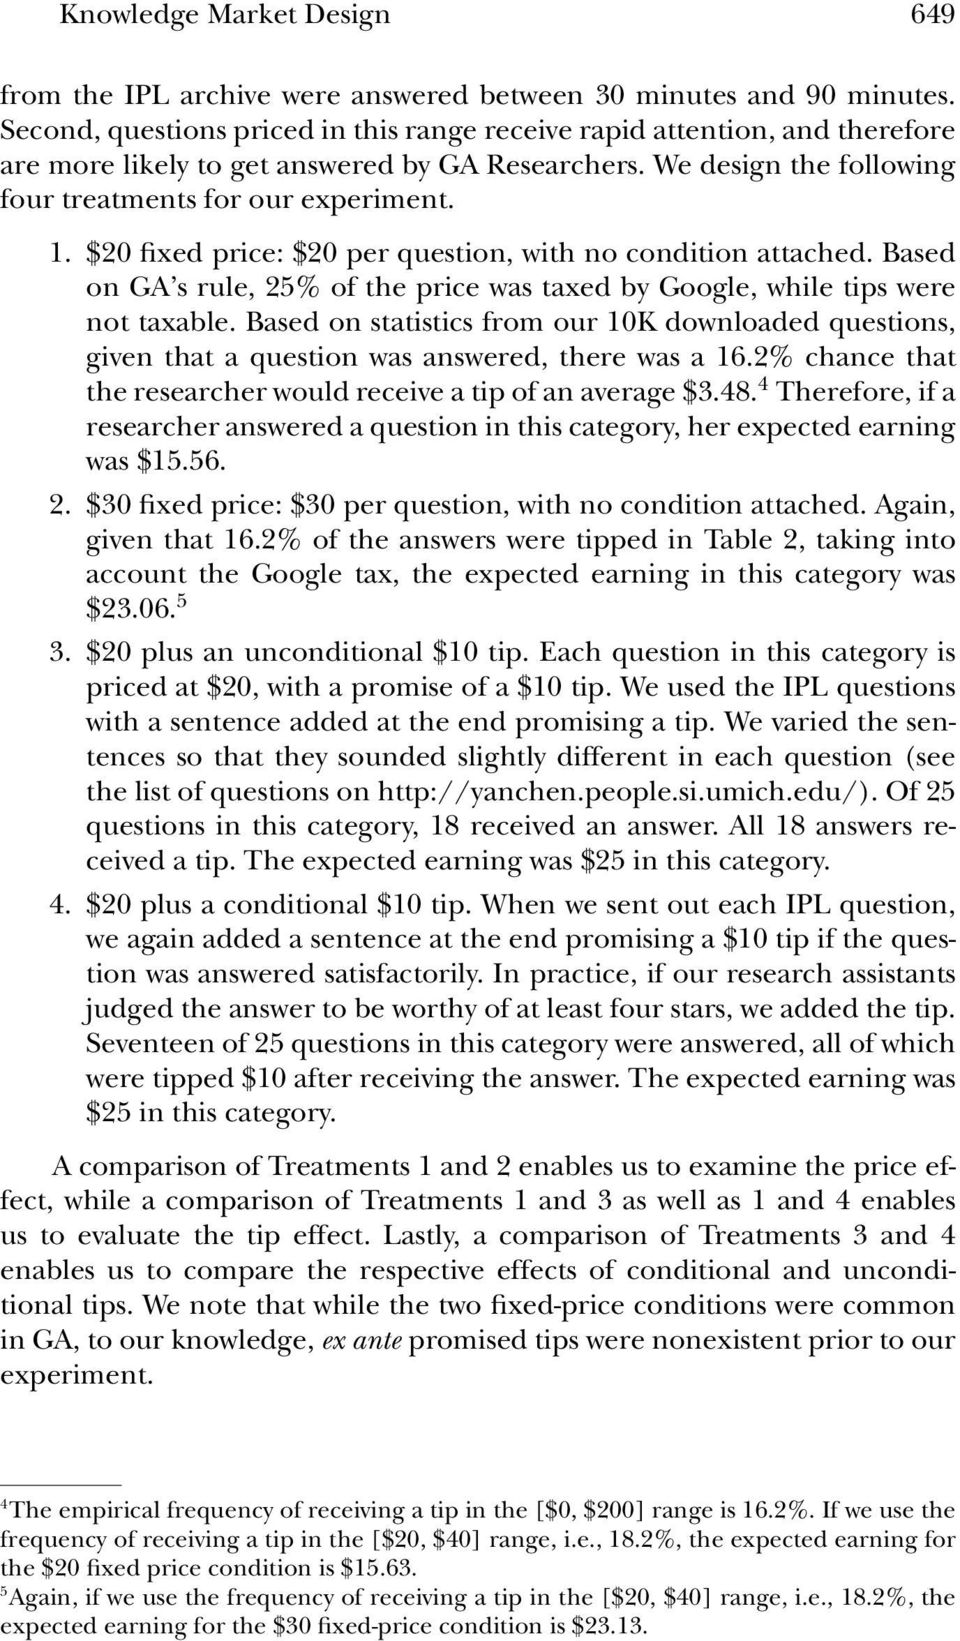 $20 fixed price: $20 per question, with no condition attached. Based on GA s rule, 25% of the price was taxed by Google, while tips were not taxable.